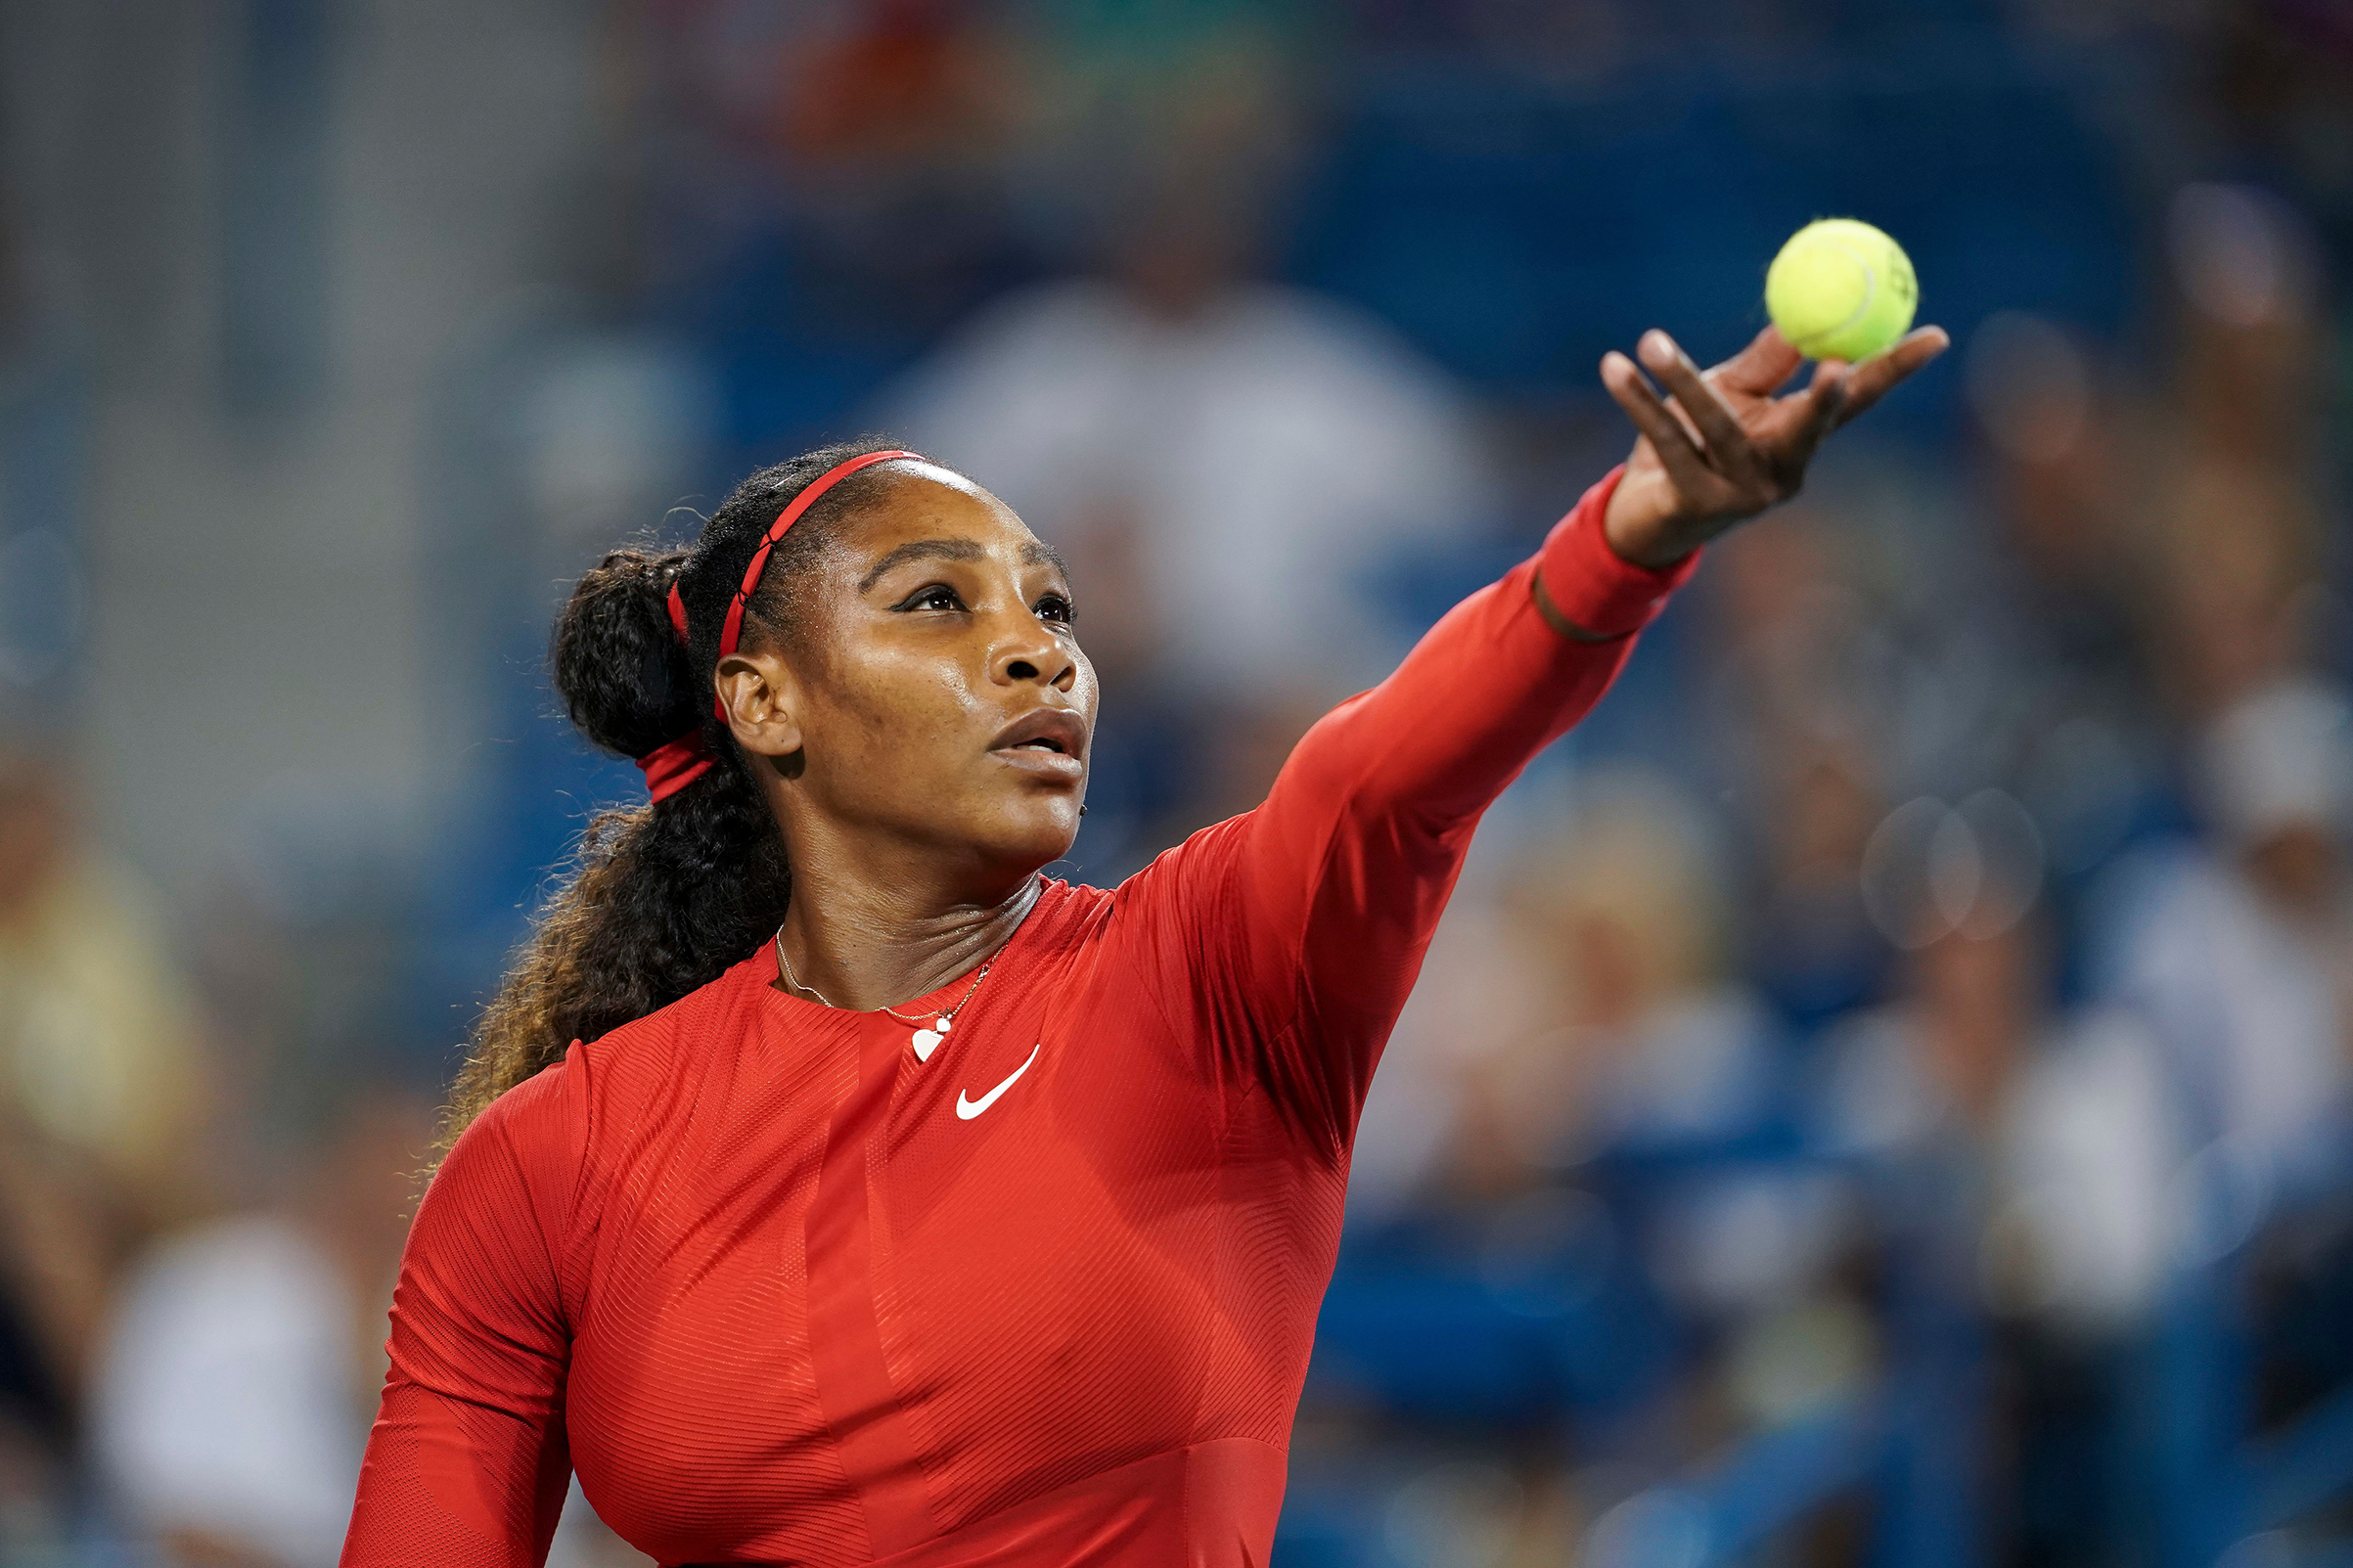 Serena's comeback has been mixed; she lost in the second round at the Cincinnati Masters, here on Aug. 14